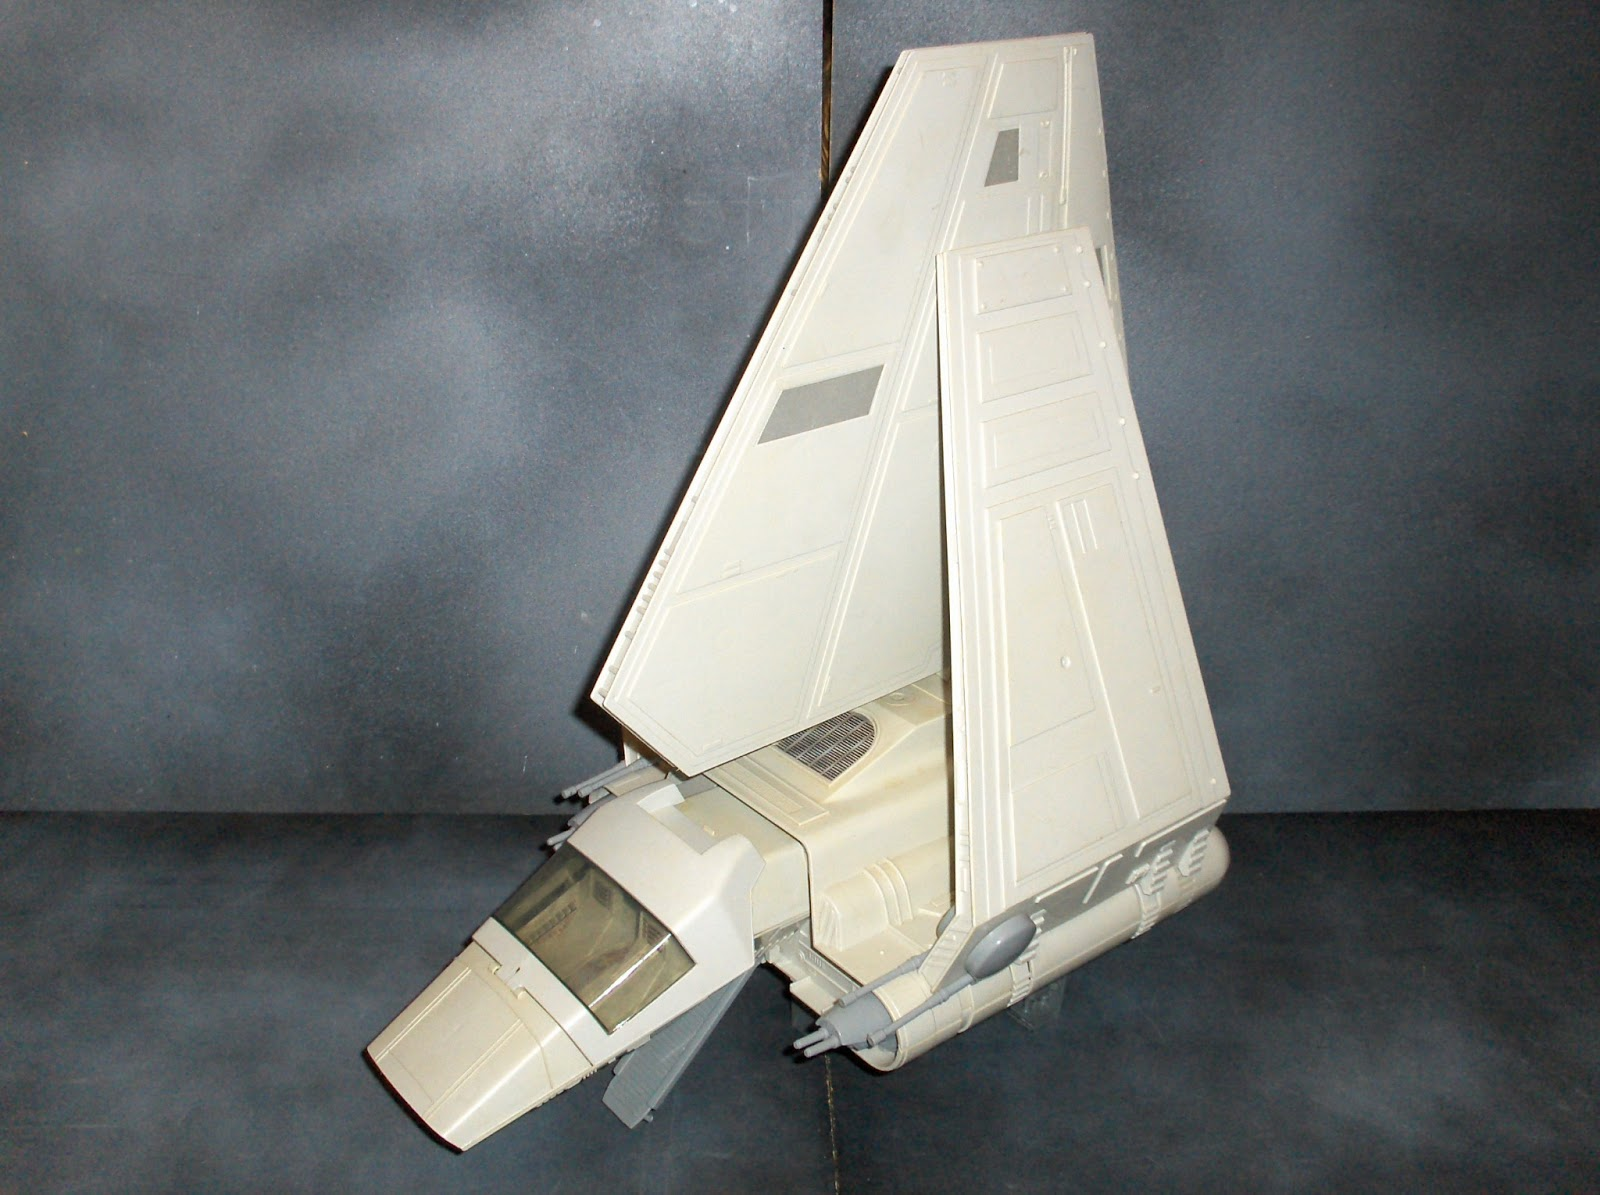 Star Wars Toy Ships : Vintage kenner star wars toys imperial shuttle vehicle